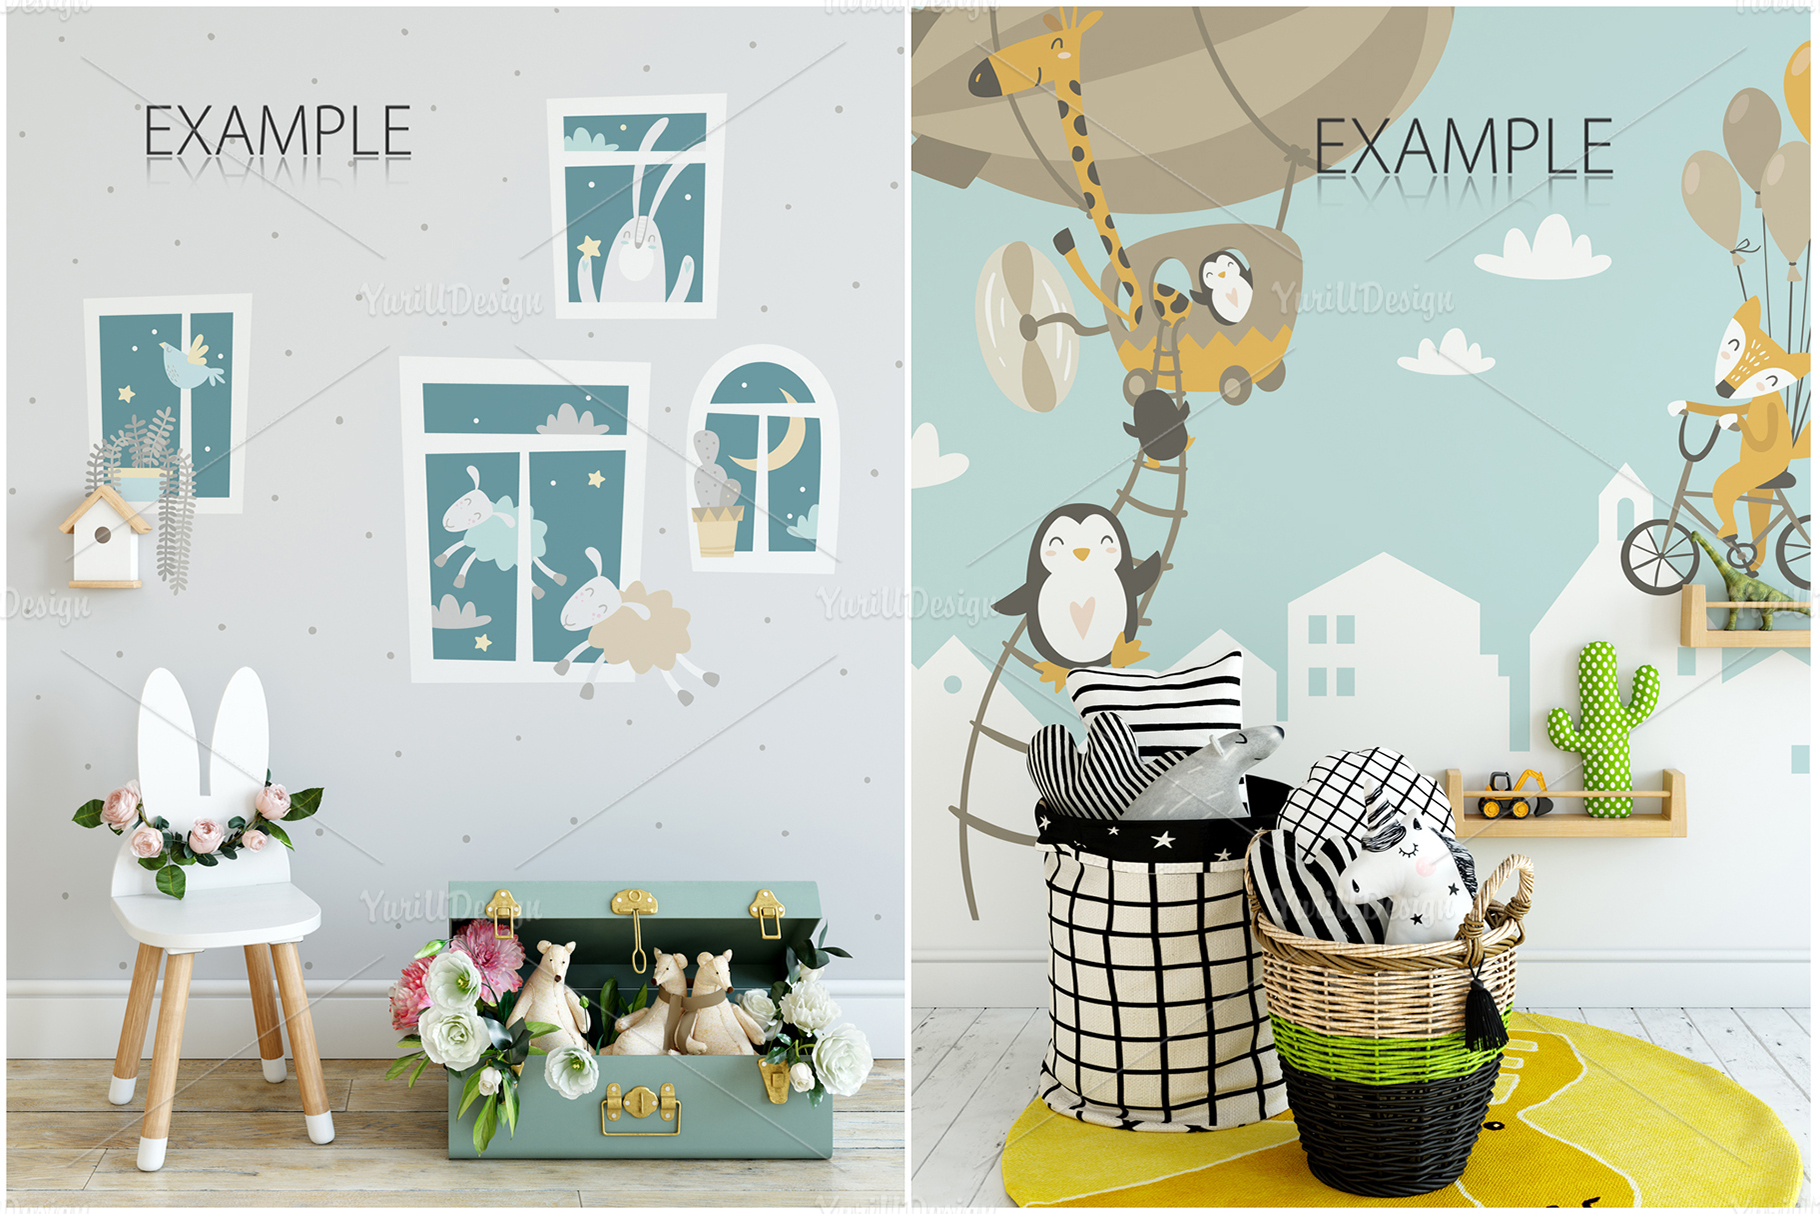 Kids Frames & Wall Mockup Bundle - 5 example image 21